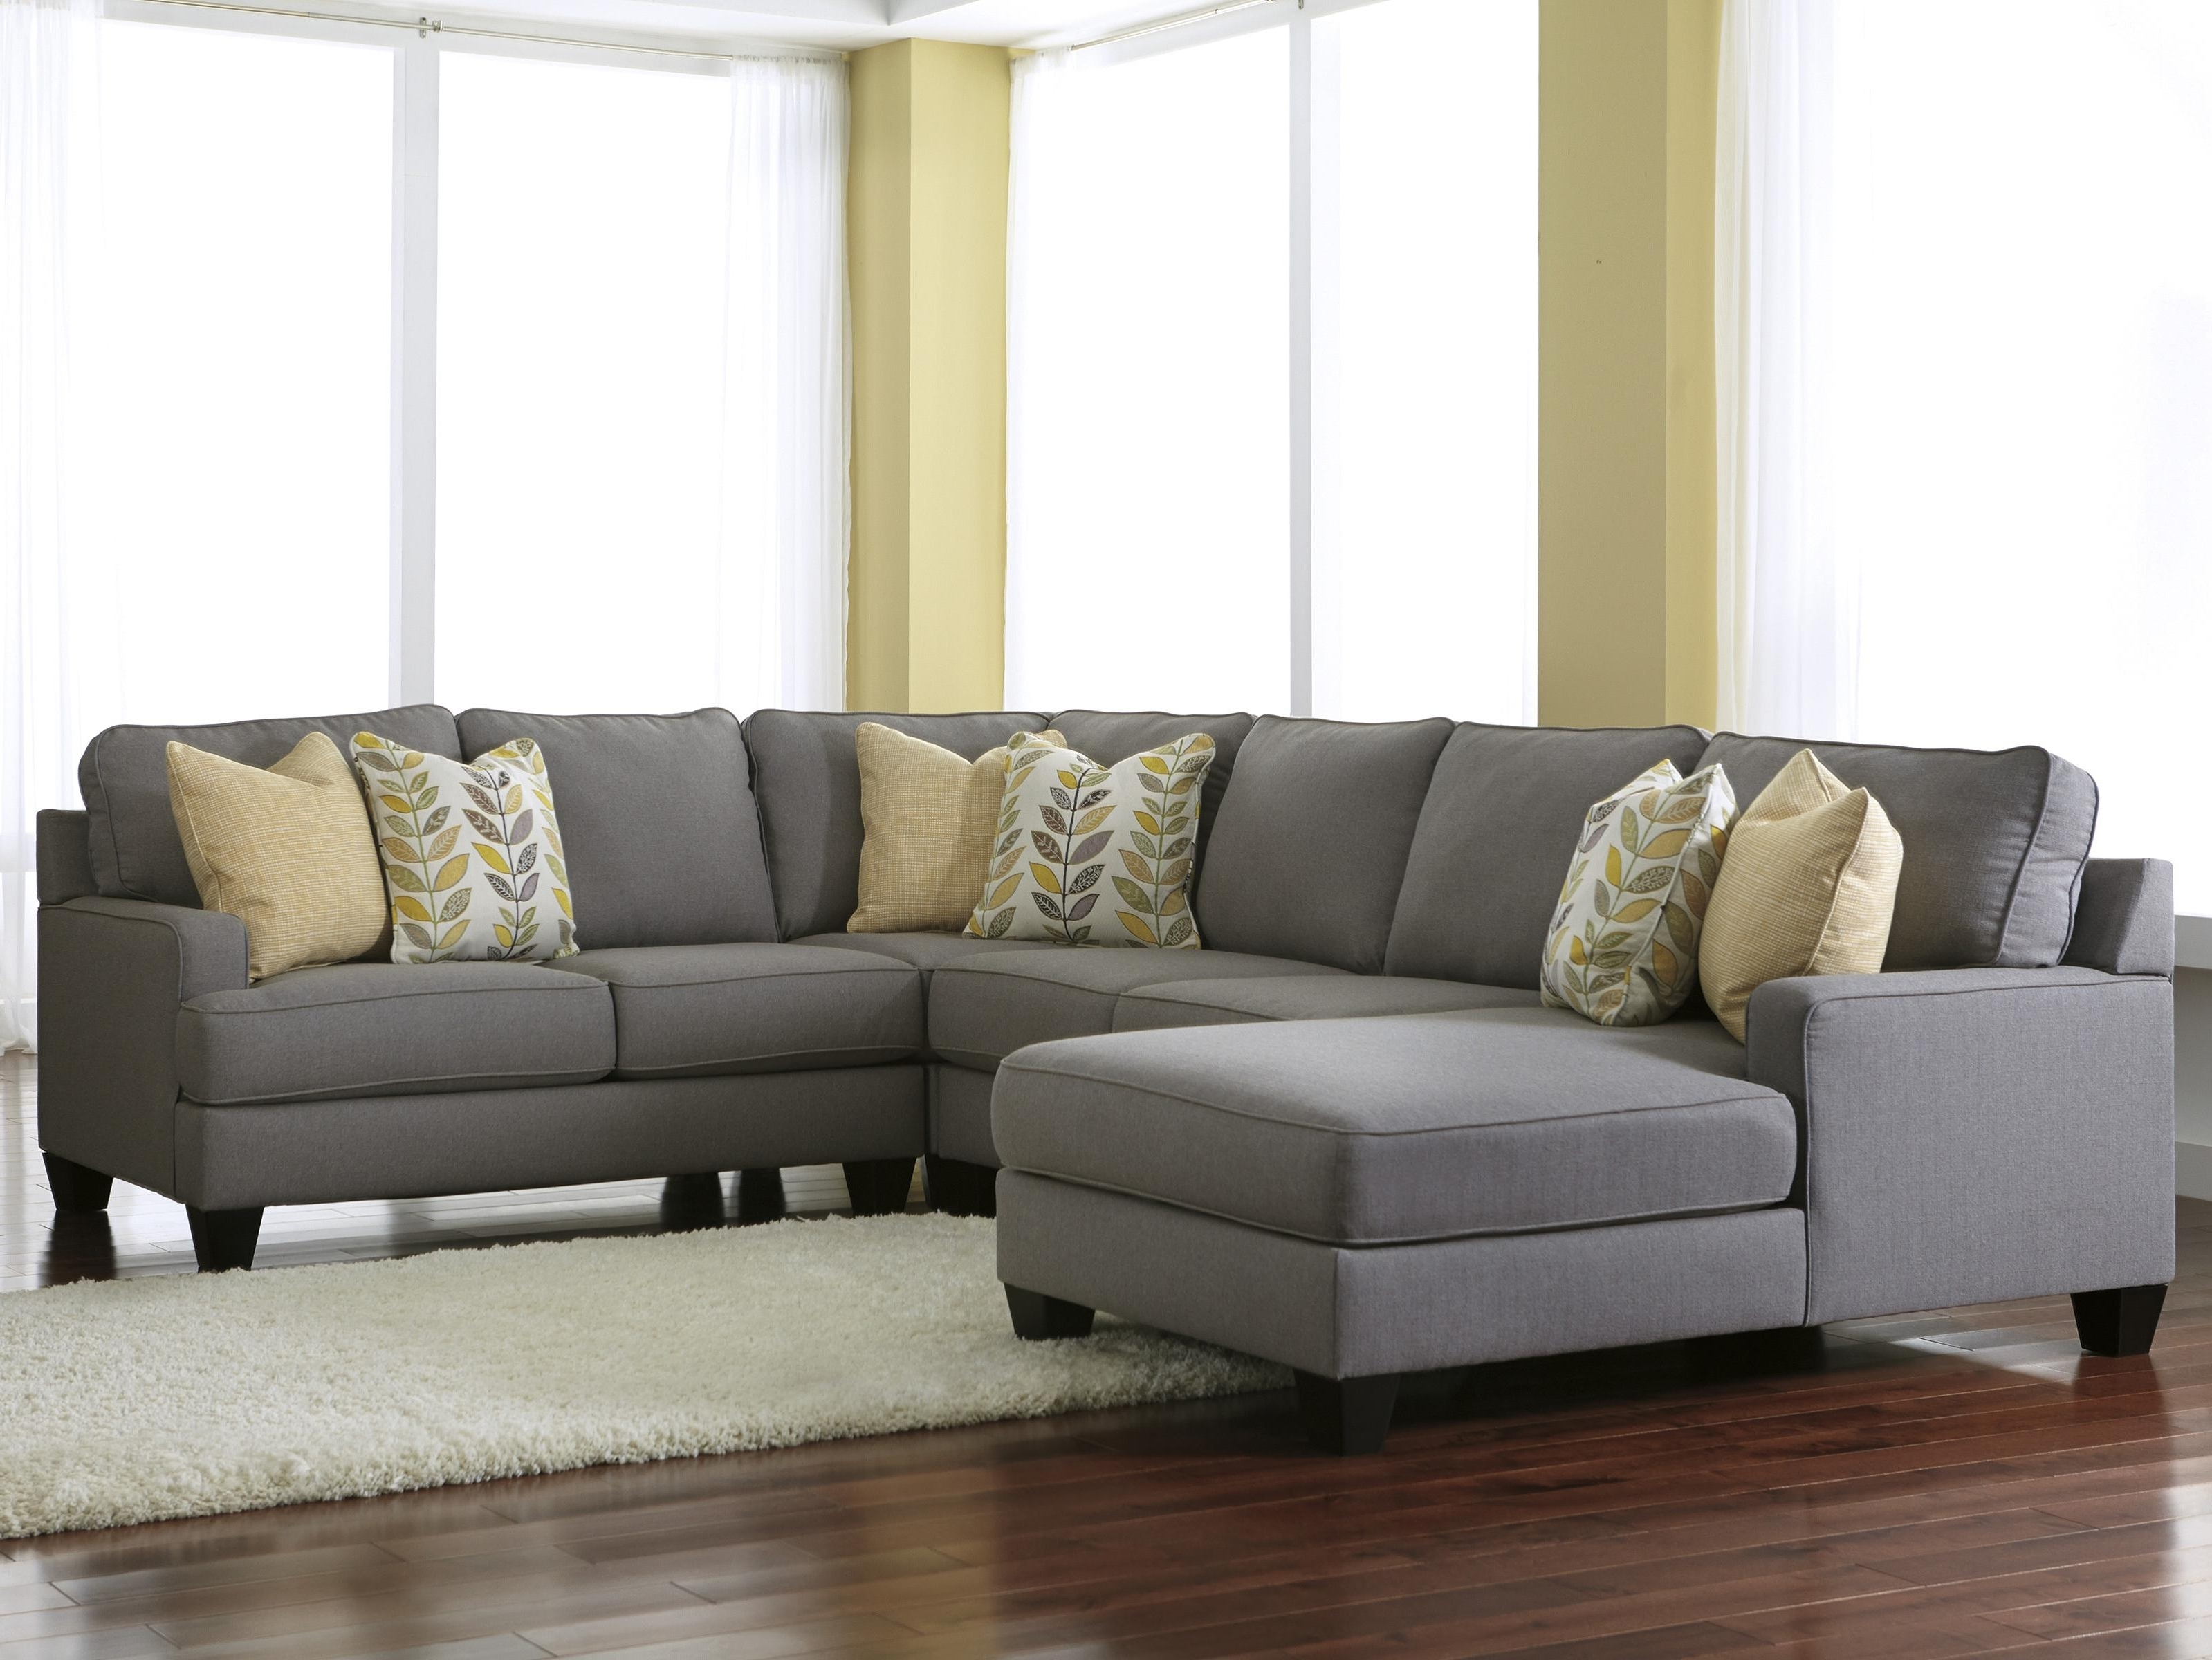 Modern 4 Piece Sectional Sofa With Left Chaise & Reversible Seat With Regard To Preferred Chaise Sofa Sectionals (View 15 of 15)